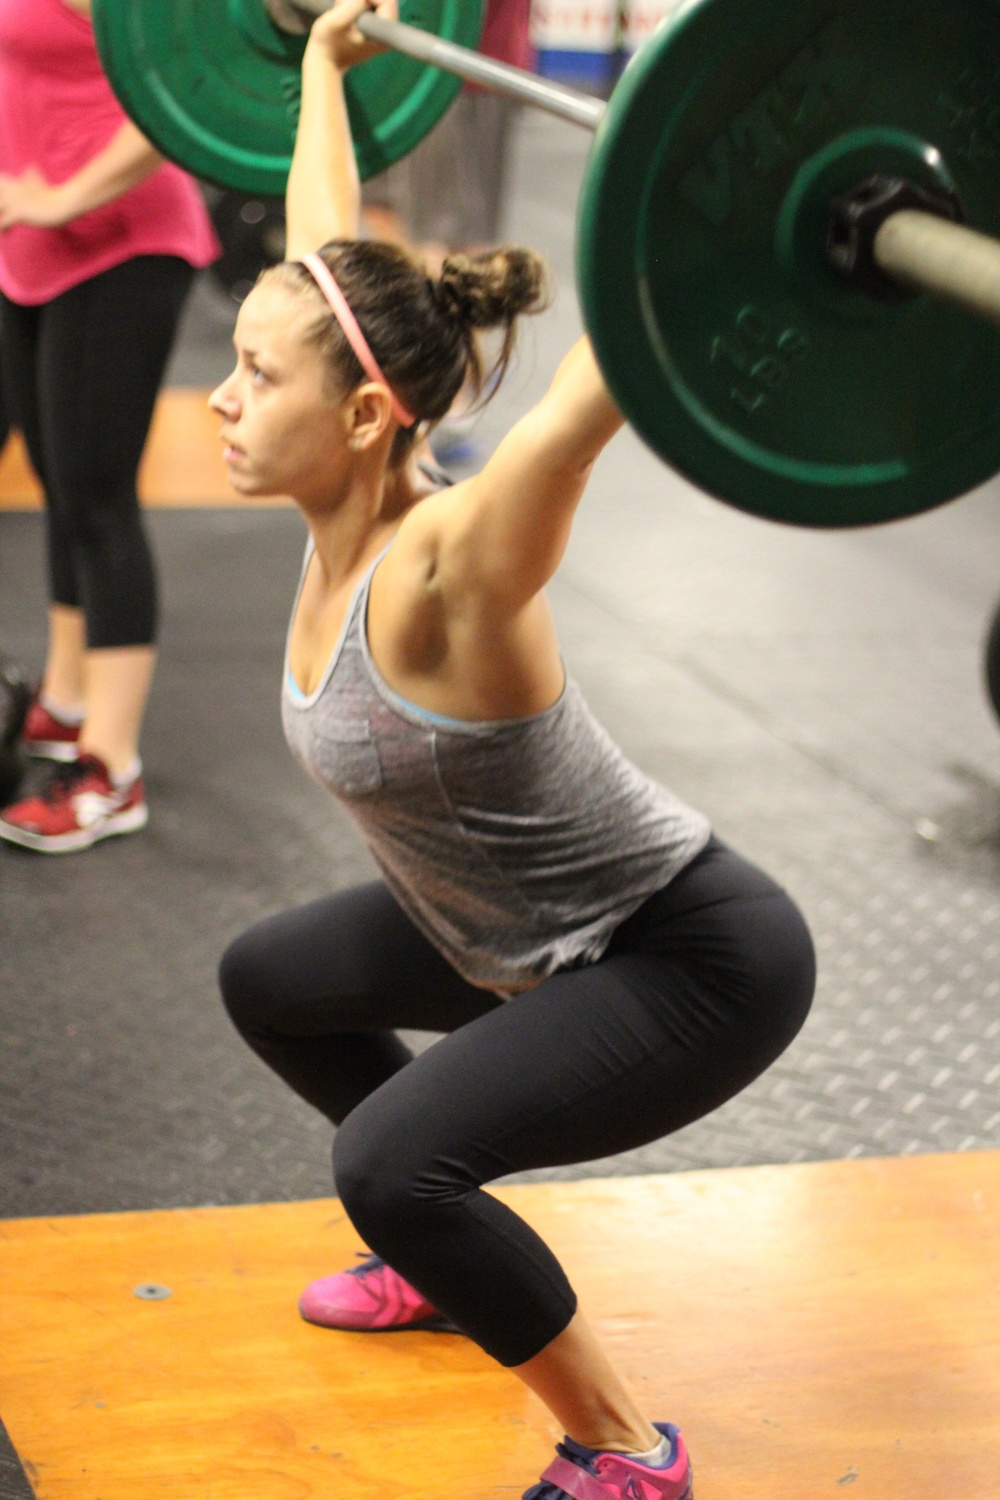 And one from her last wod in September 2015.